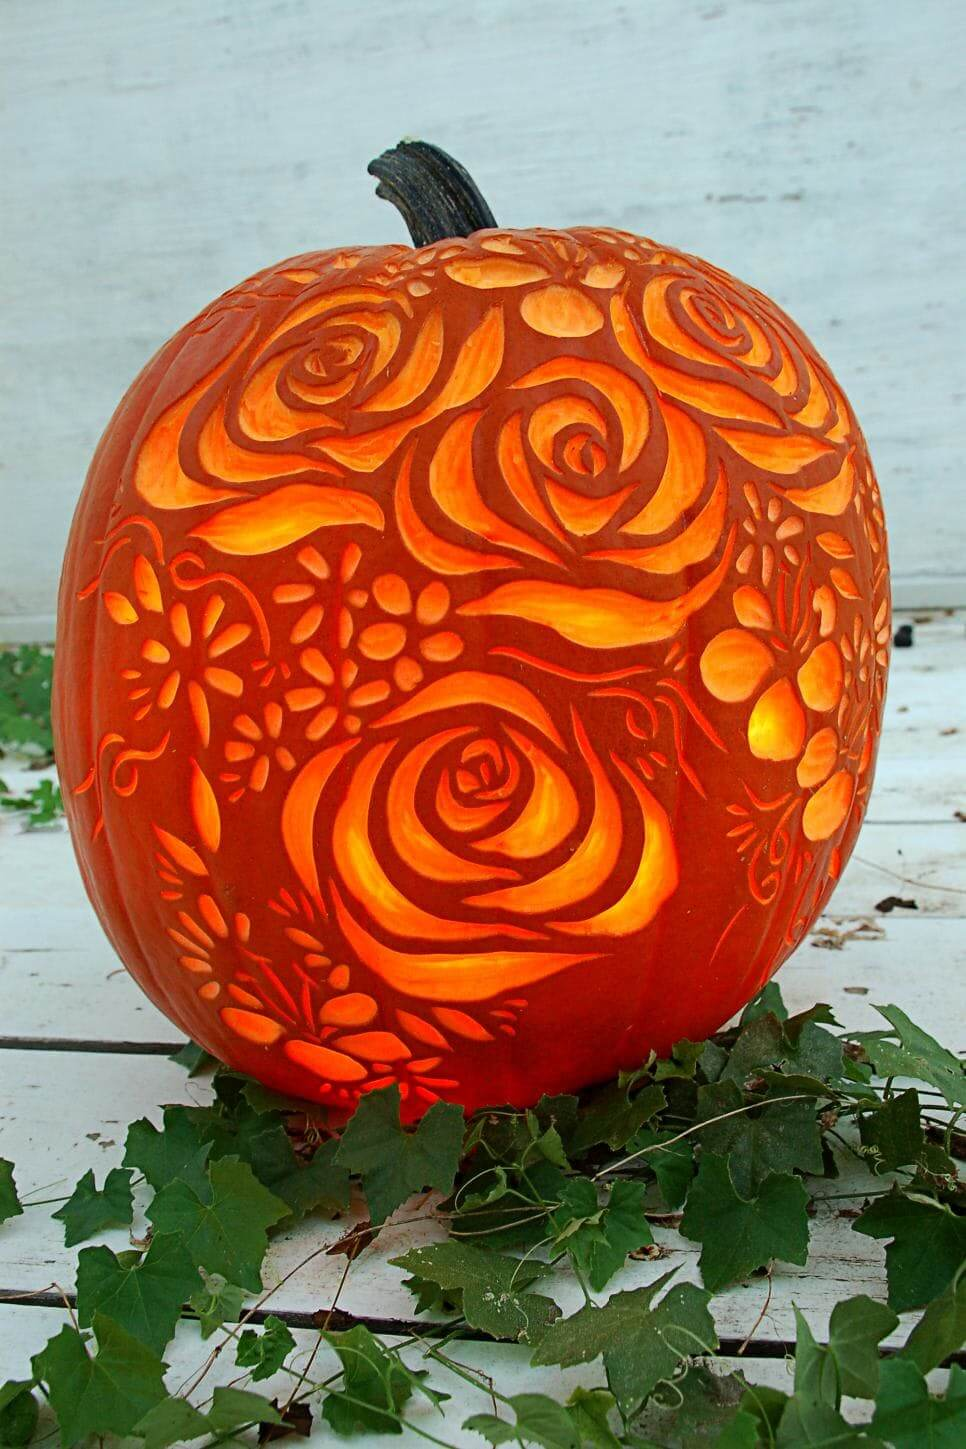 30 rose petals - Carving Pumpkin Ideas